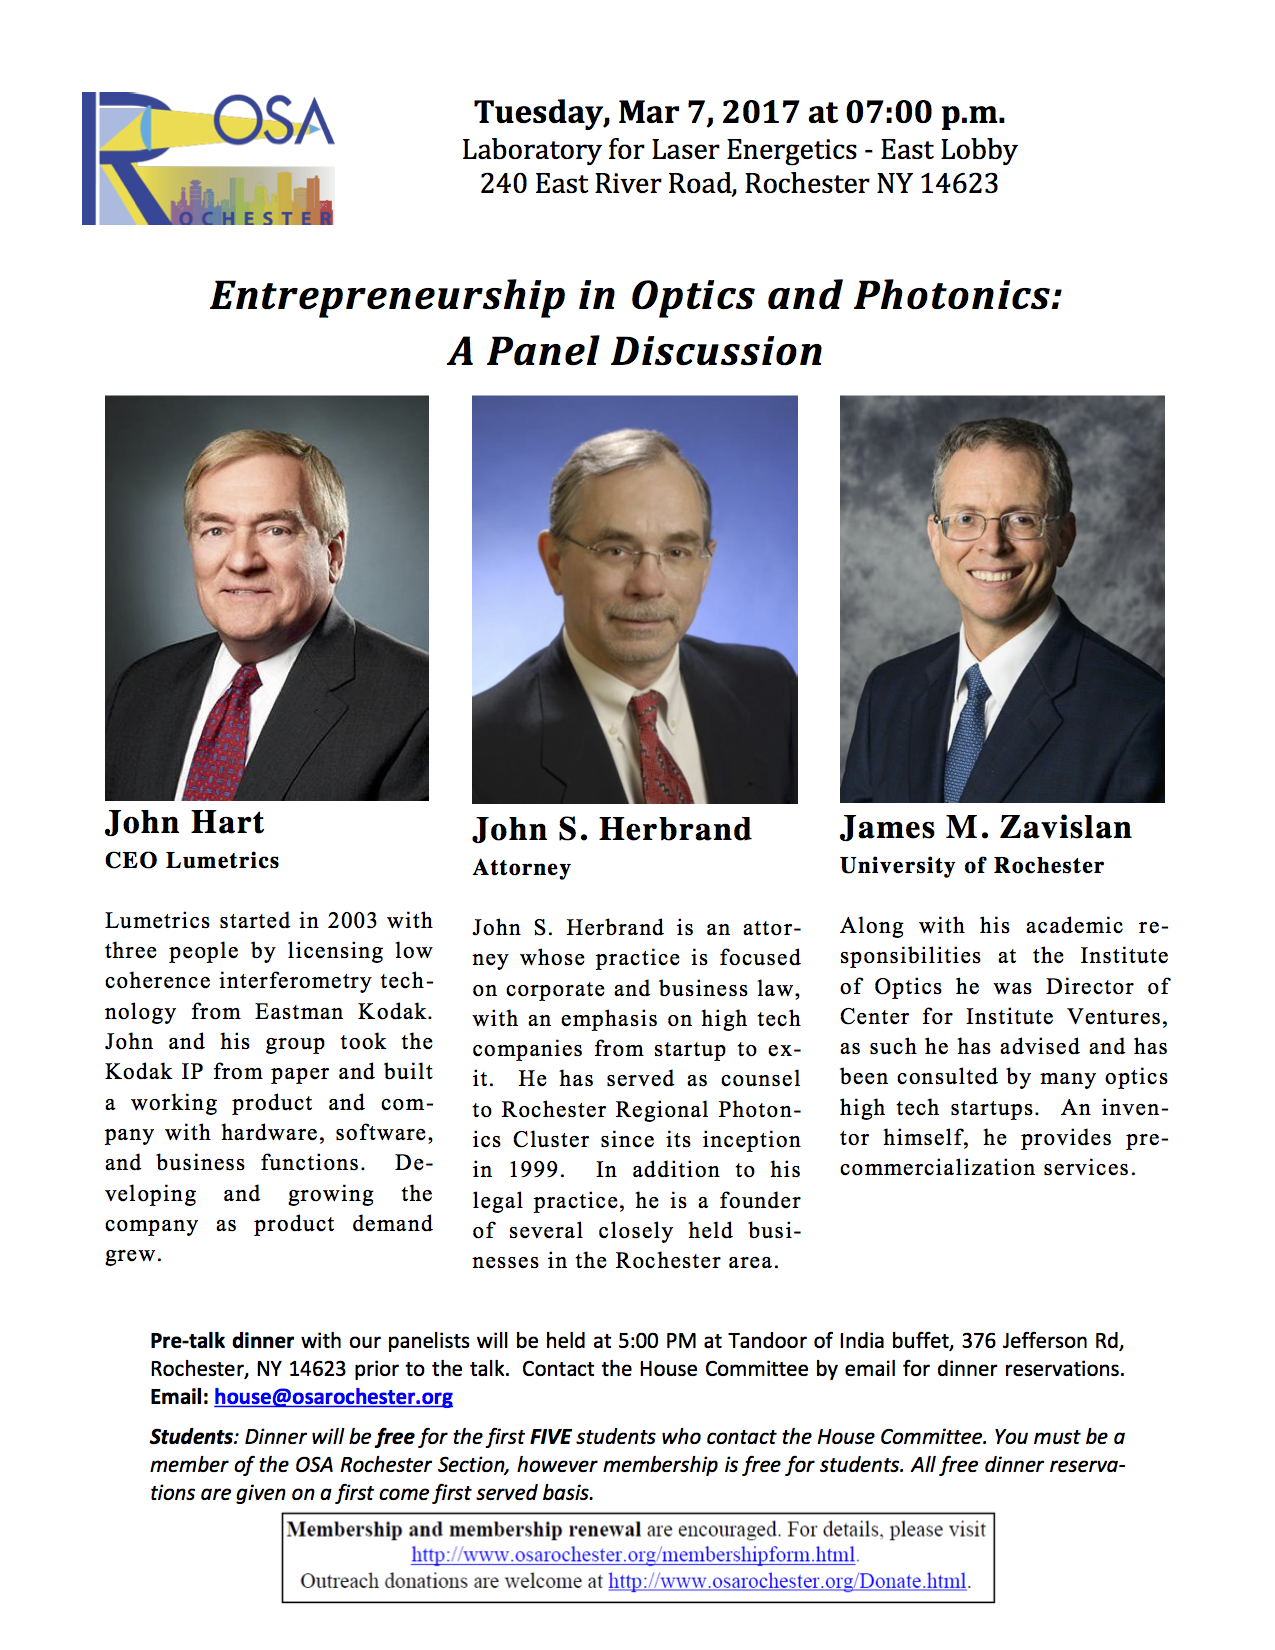 2017-03-07_optics_entrepreneurship_panel